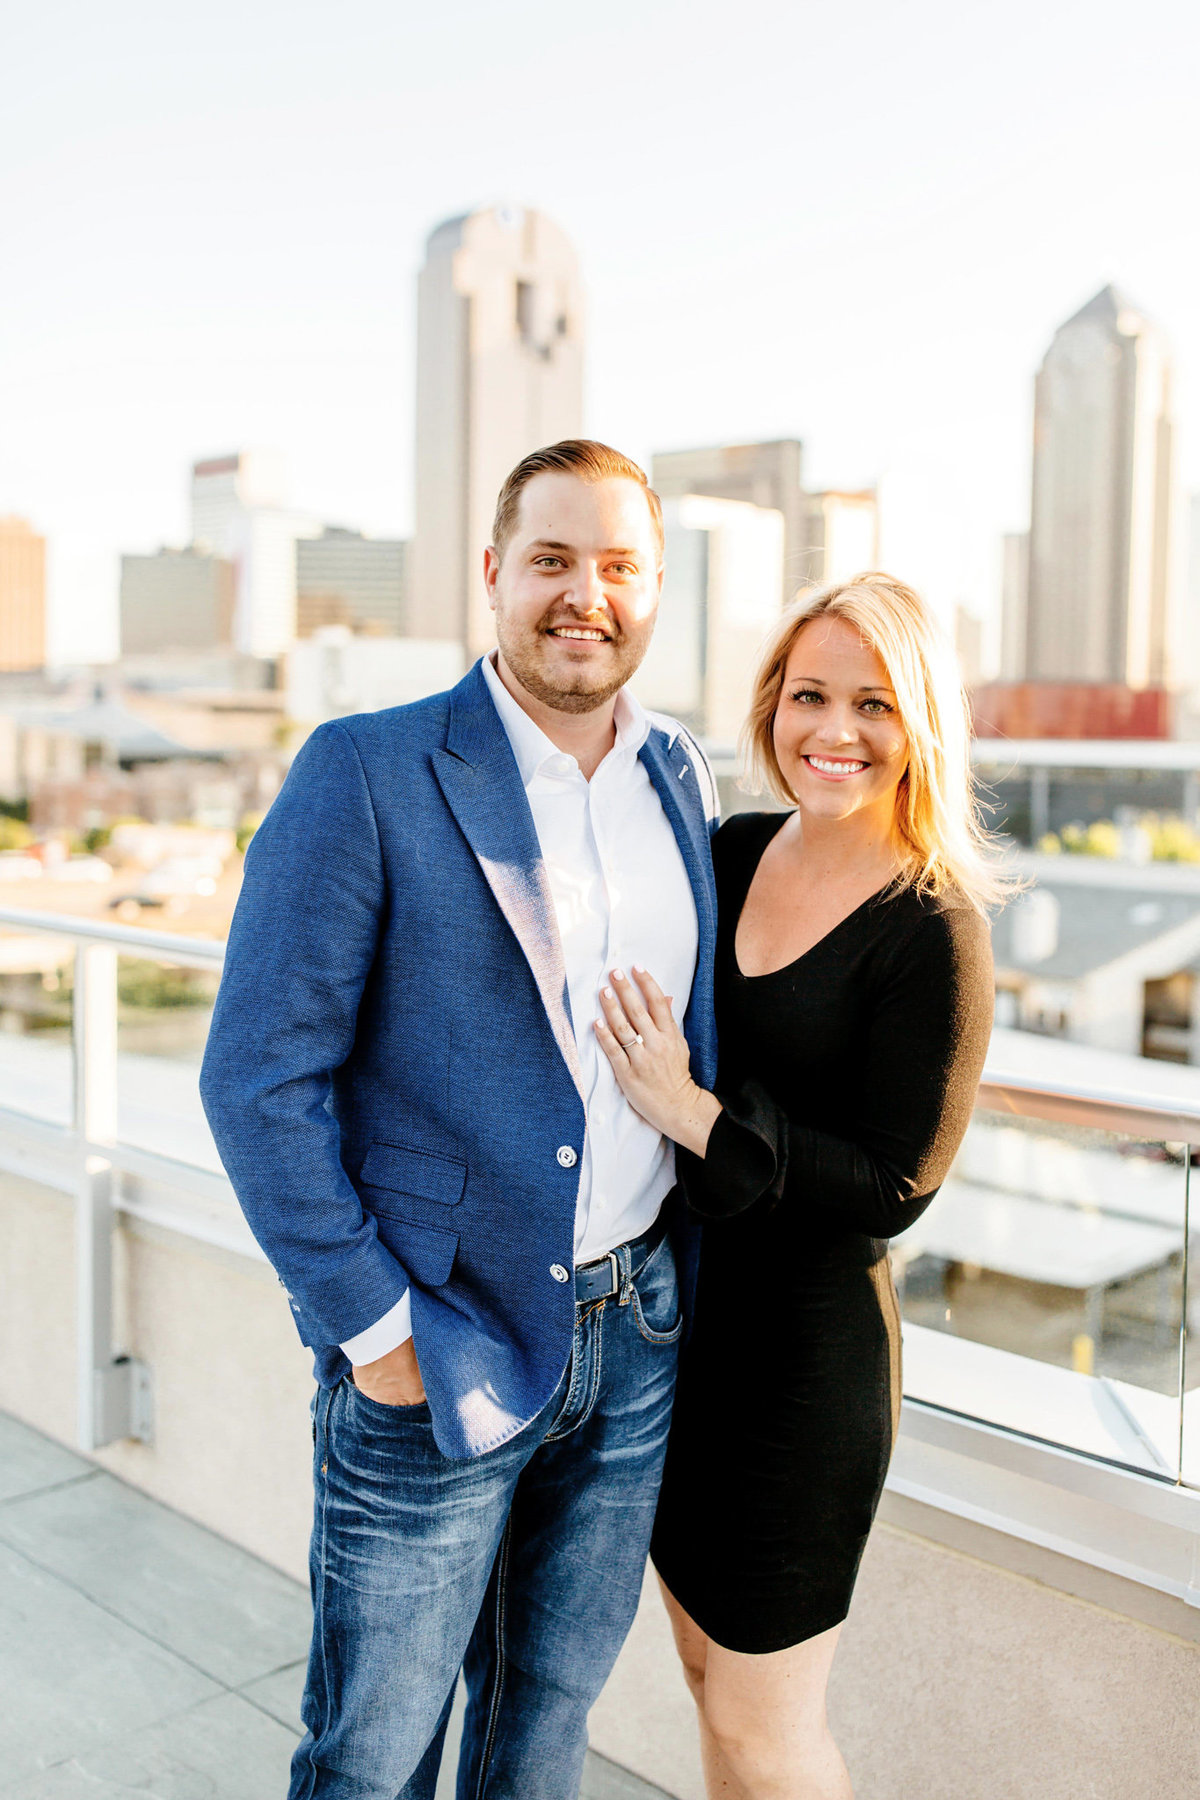 Eric & Megan - Downtown Dallas Rooftop Proposal & Engagement Session-62